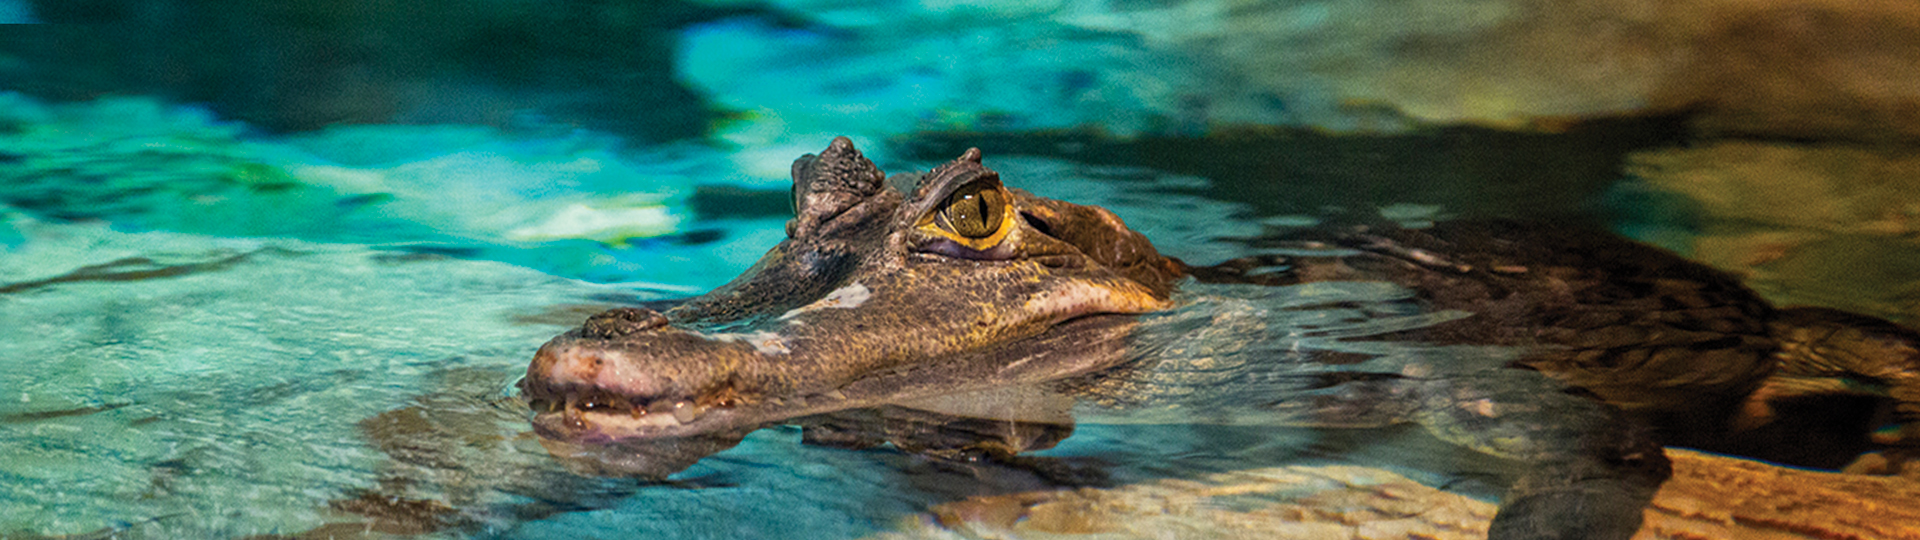 Croc Header | SEA LIFE at Mall of America